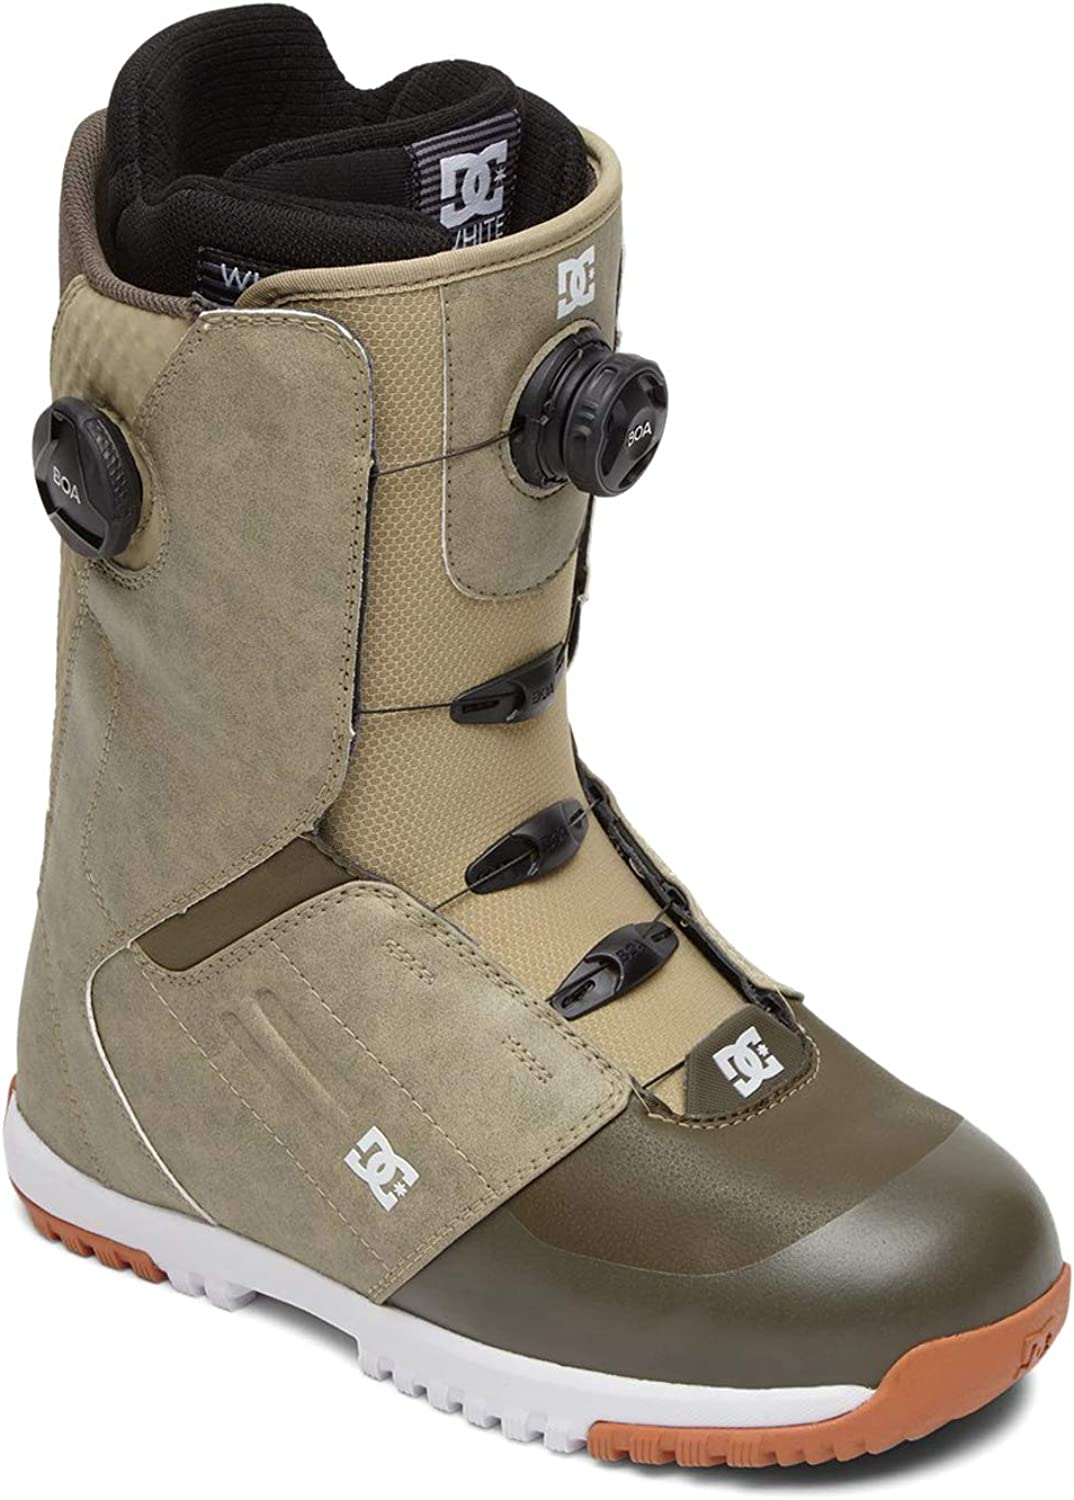 Now on sale DC Indefinitely Control Boax Snowboard Boots